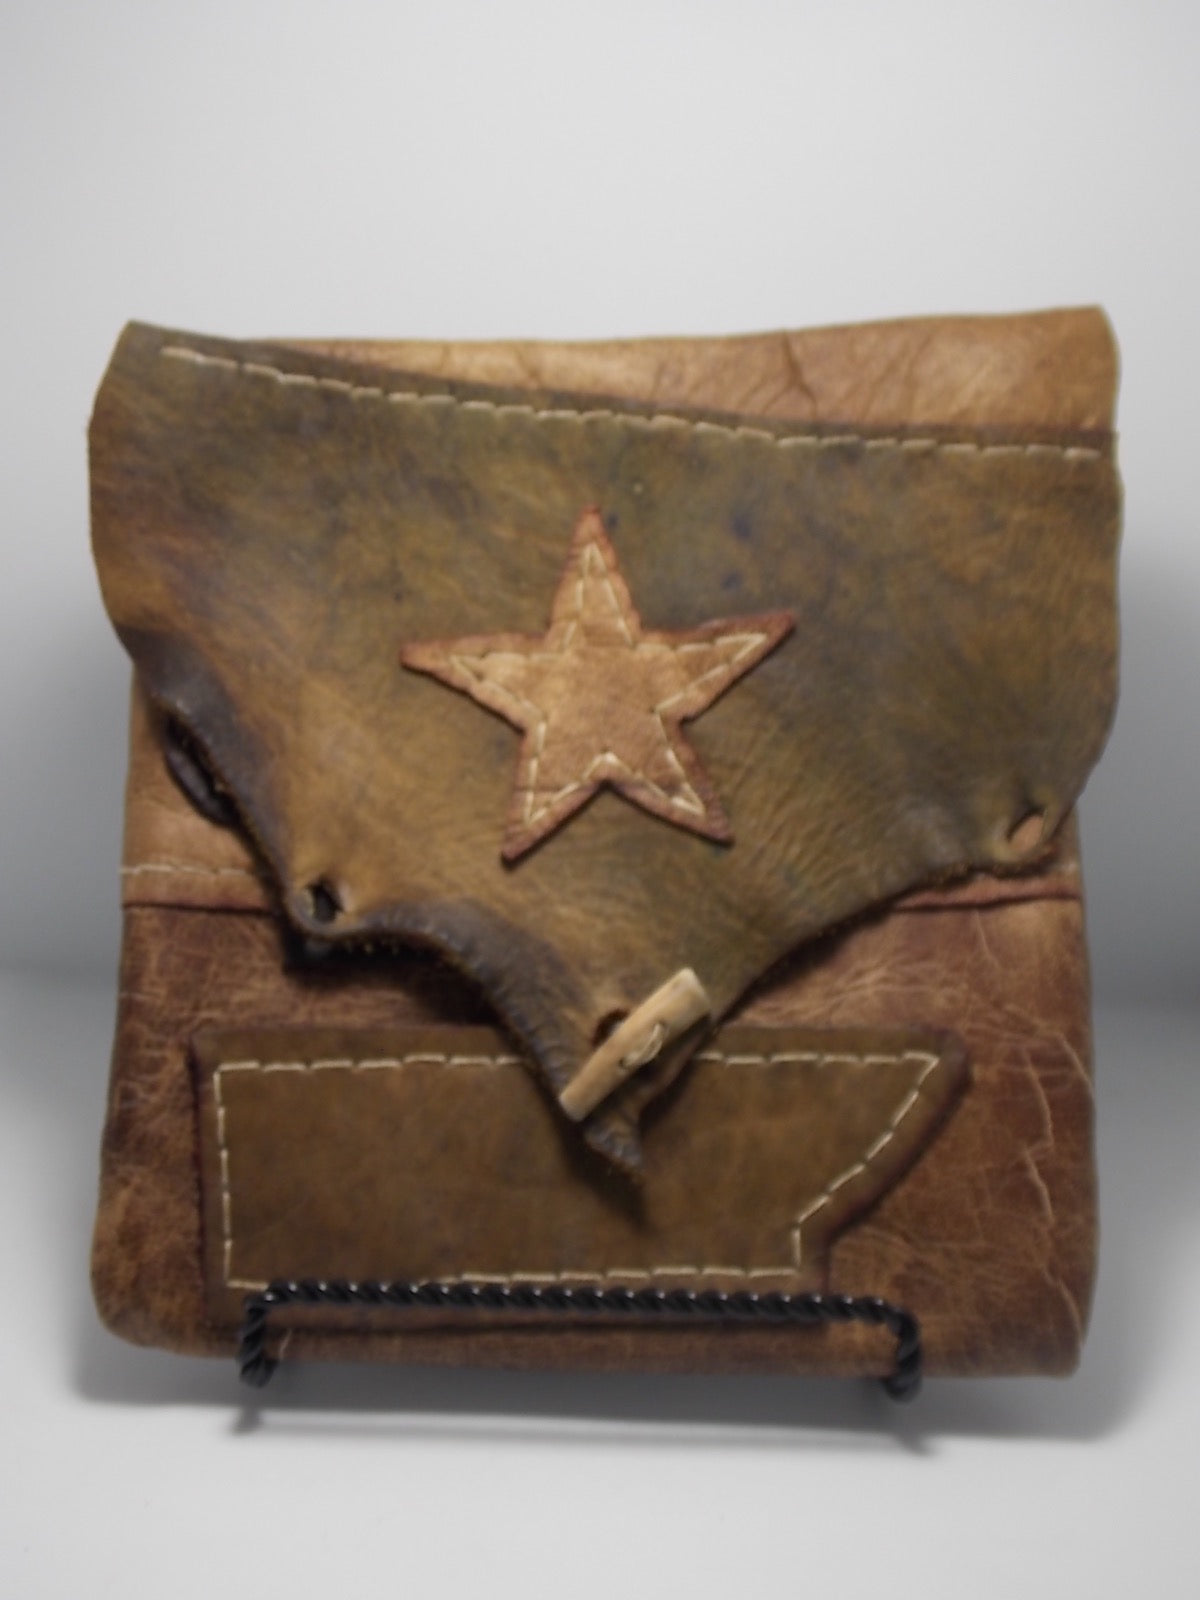 Leather bag by Russel Dahlstrom